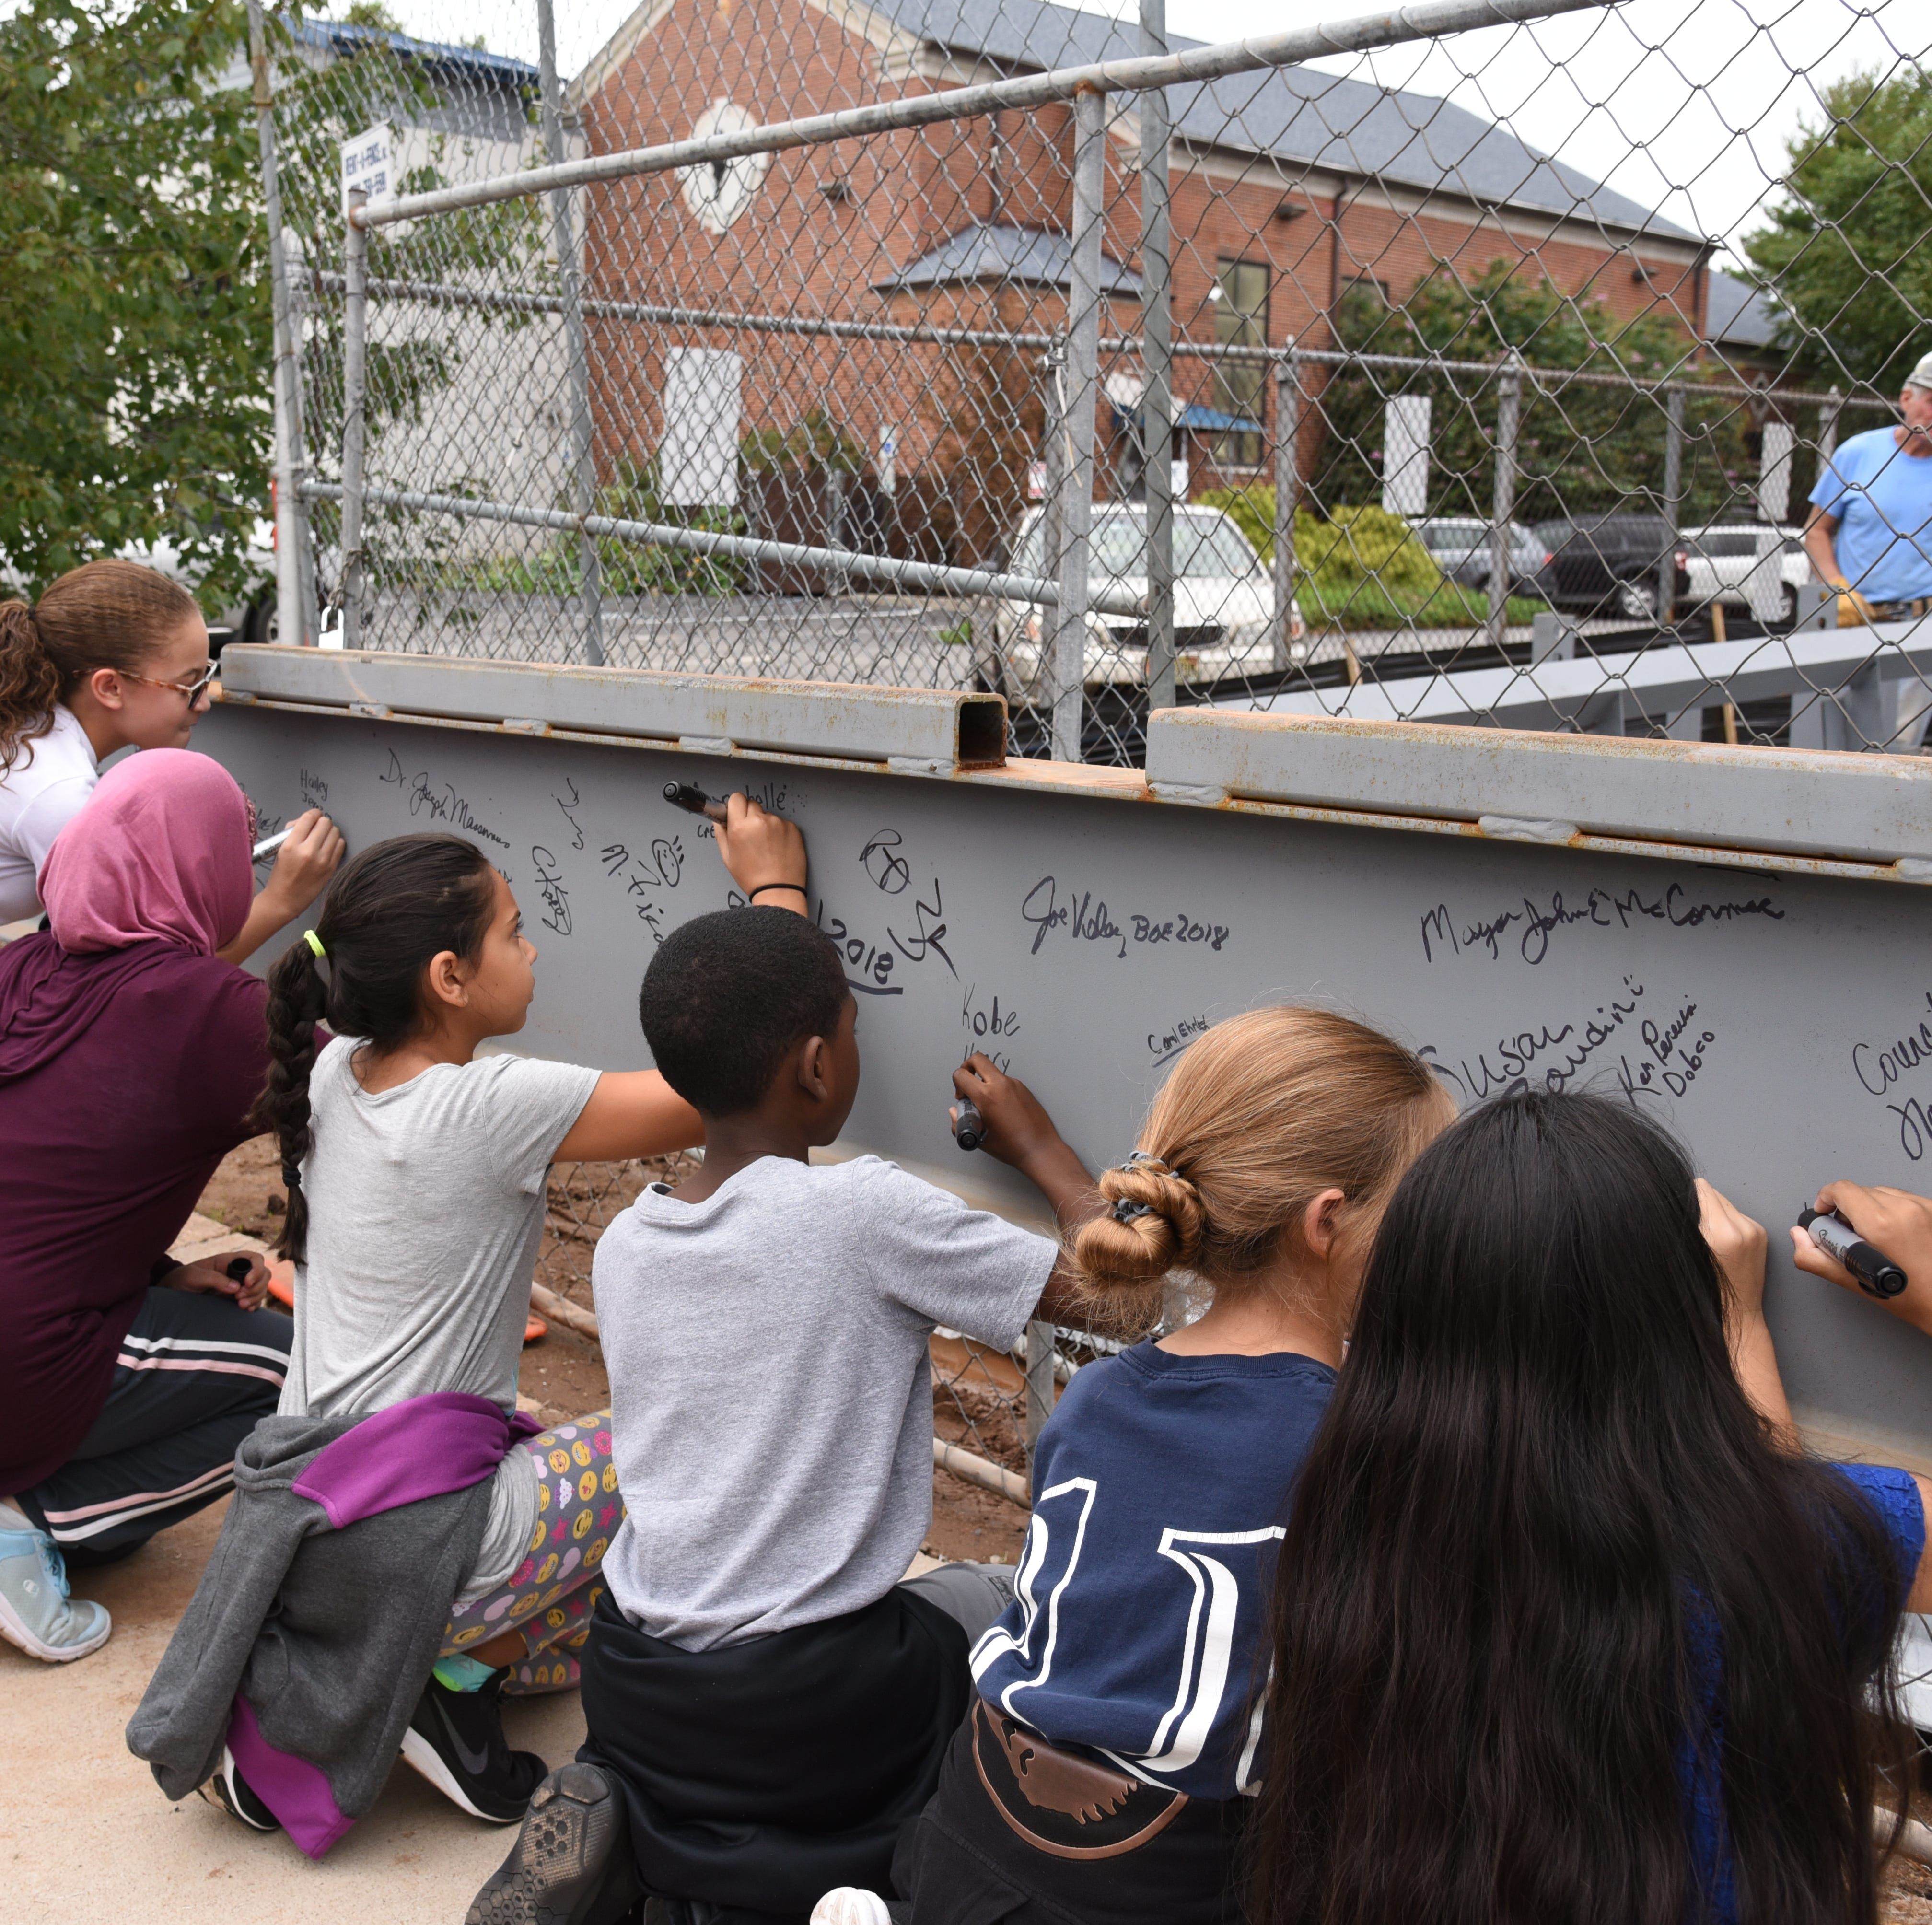 Participants in the Ross Street School #11 'Topping-Off' ceremony signed the  structural steel beam before being hoisted into place and secured atop the buildings frame.